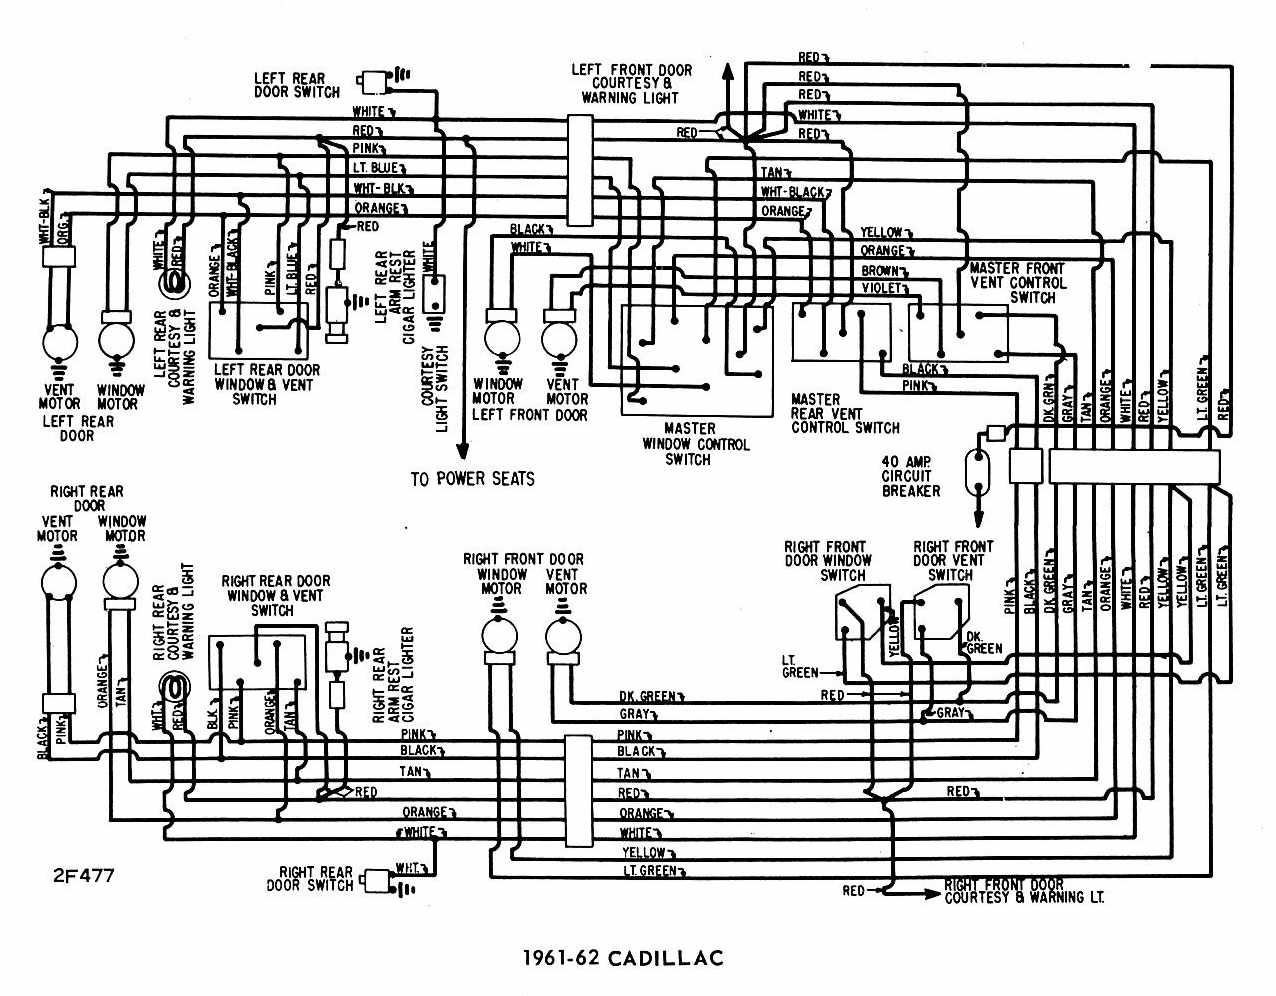 windows-wiring-diagram-of-1961-62-cadillac Radio Wiring Harness Blazer on john deere, for ram r2,